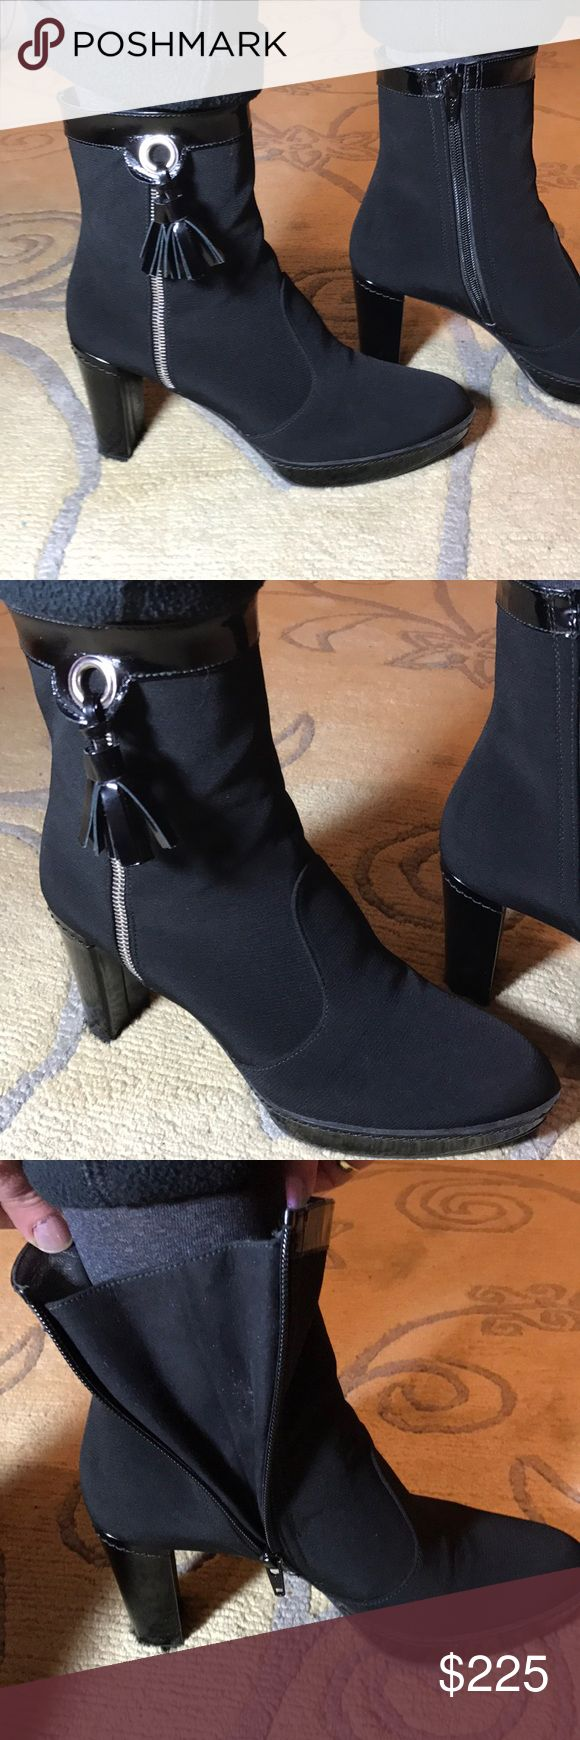 Stewart Weitzman gore tex water resistant boots Worn few times,great quality and very comfortable,zipper ankle stewart weitzman Shoes Ankle Boots & Booties